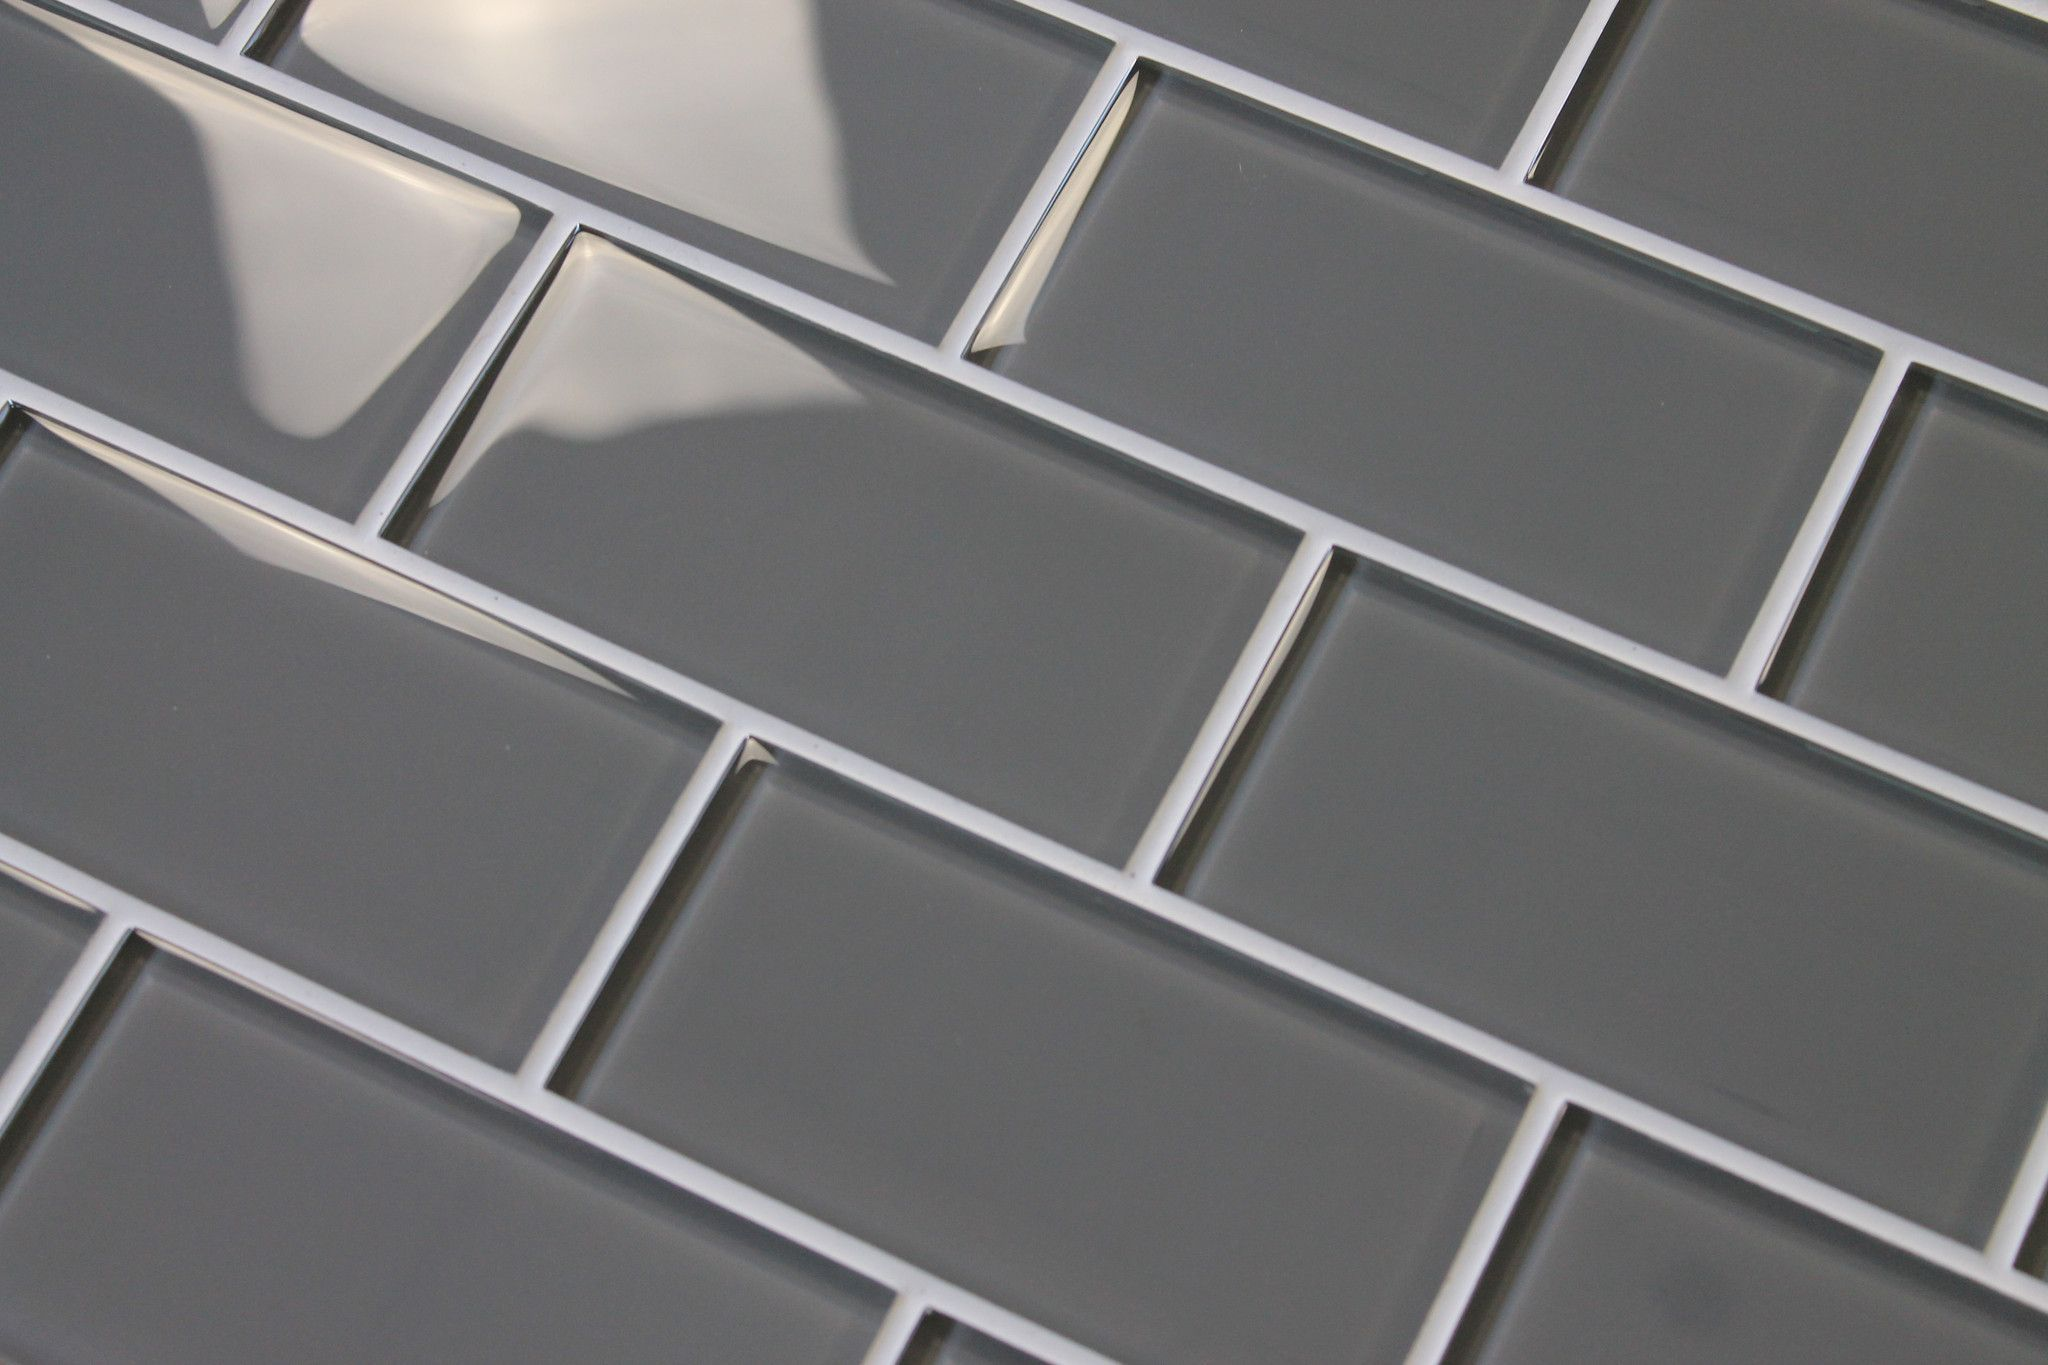 Pebble Gray 3x6 Gl Subway Tiles Rocky Point Tile Online And Mosaic